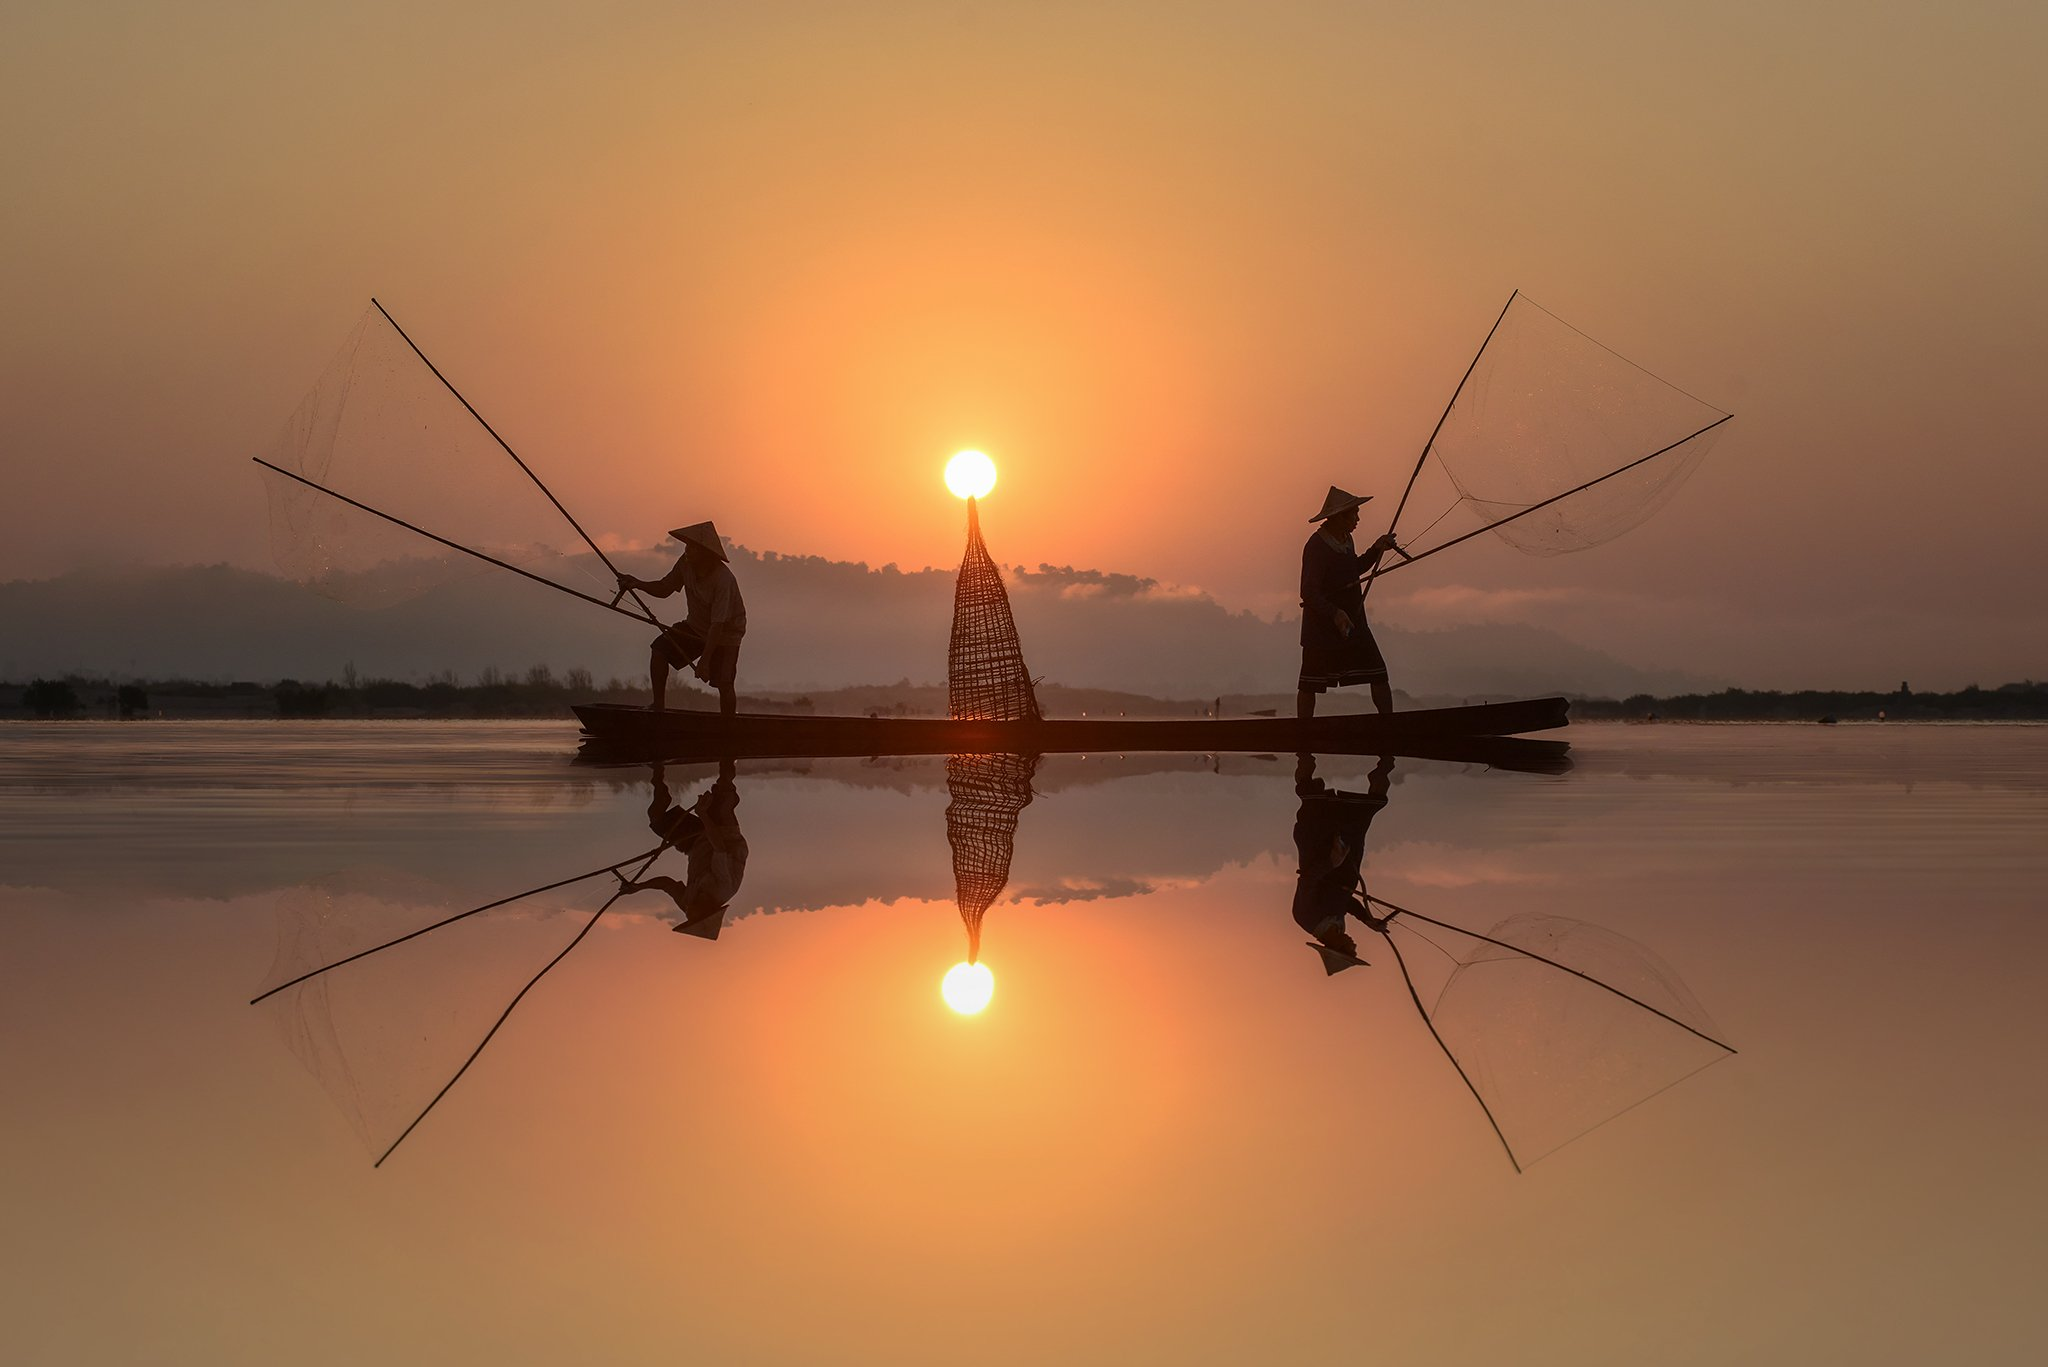 fisherman,fish,asia,asian,light,nets,, Saravut Whanset